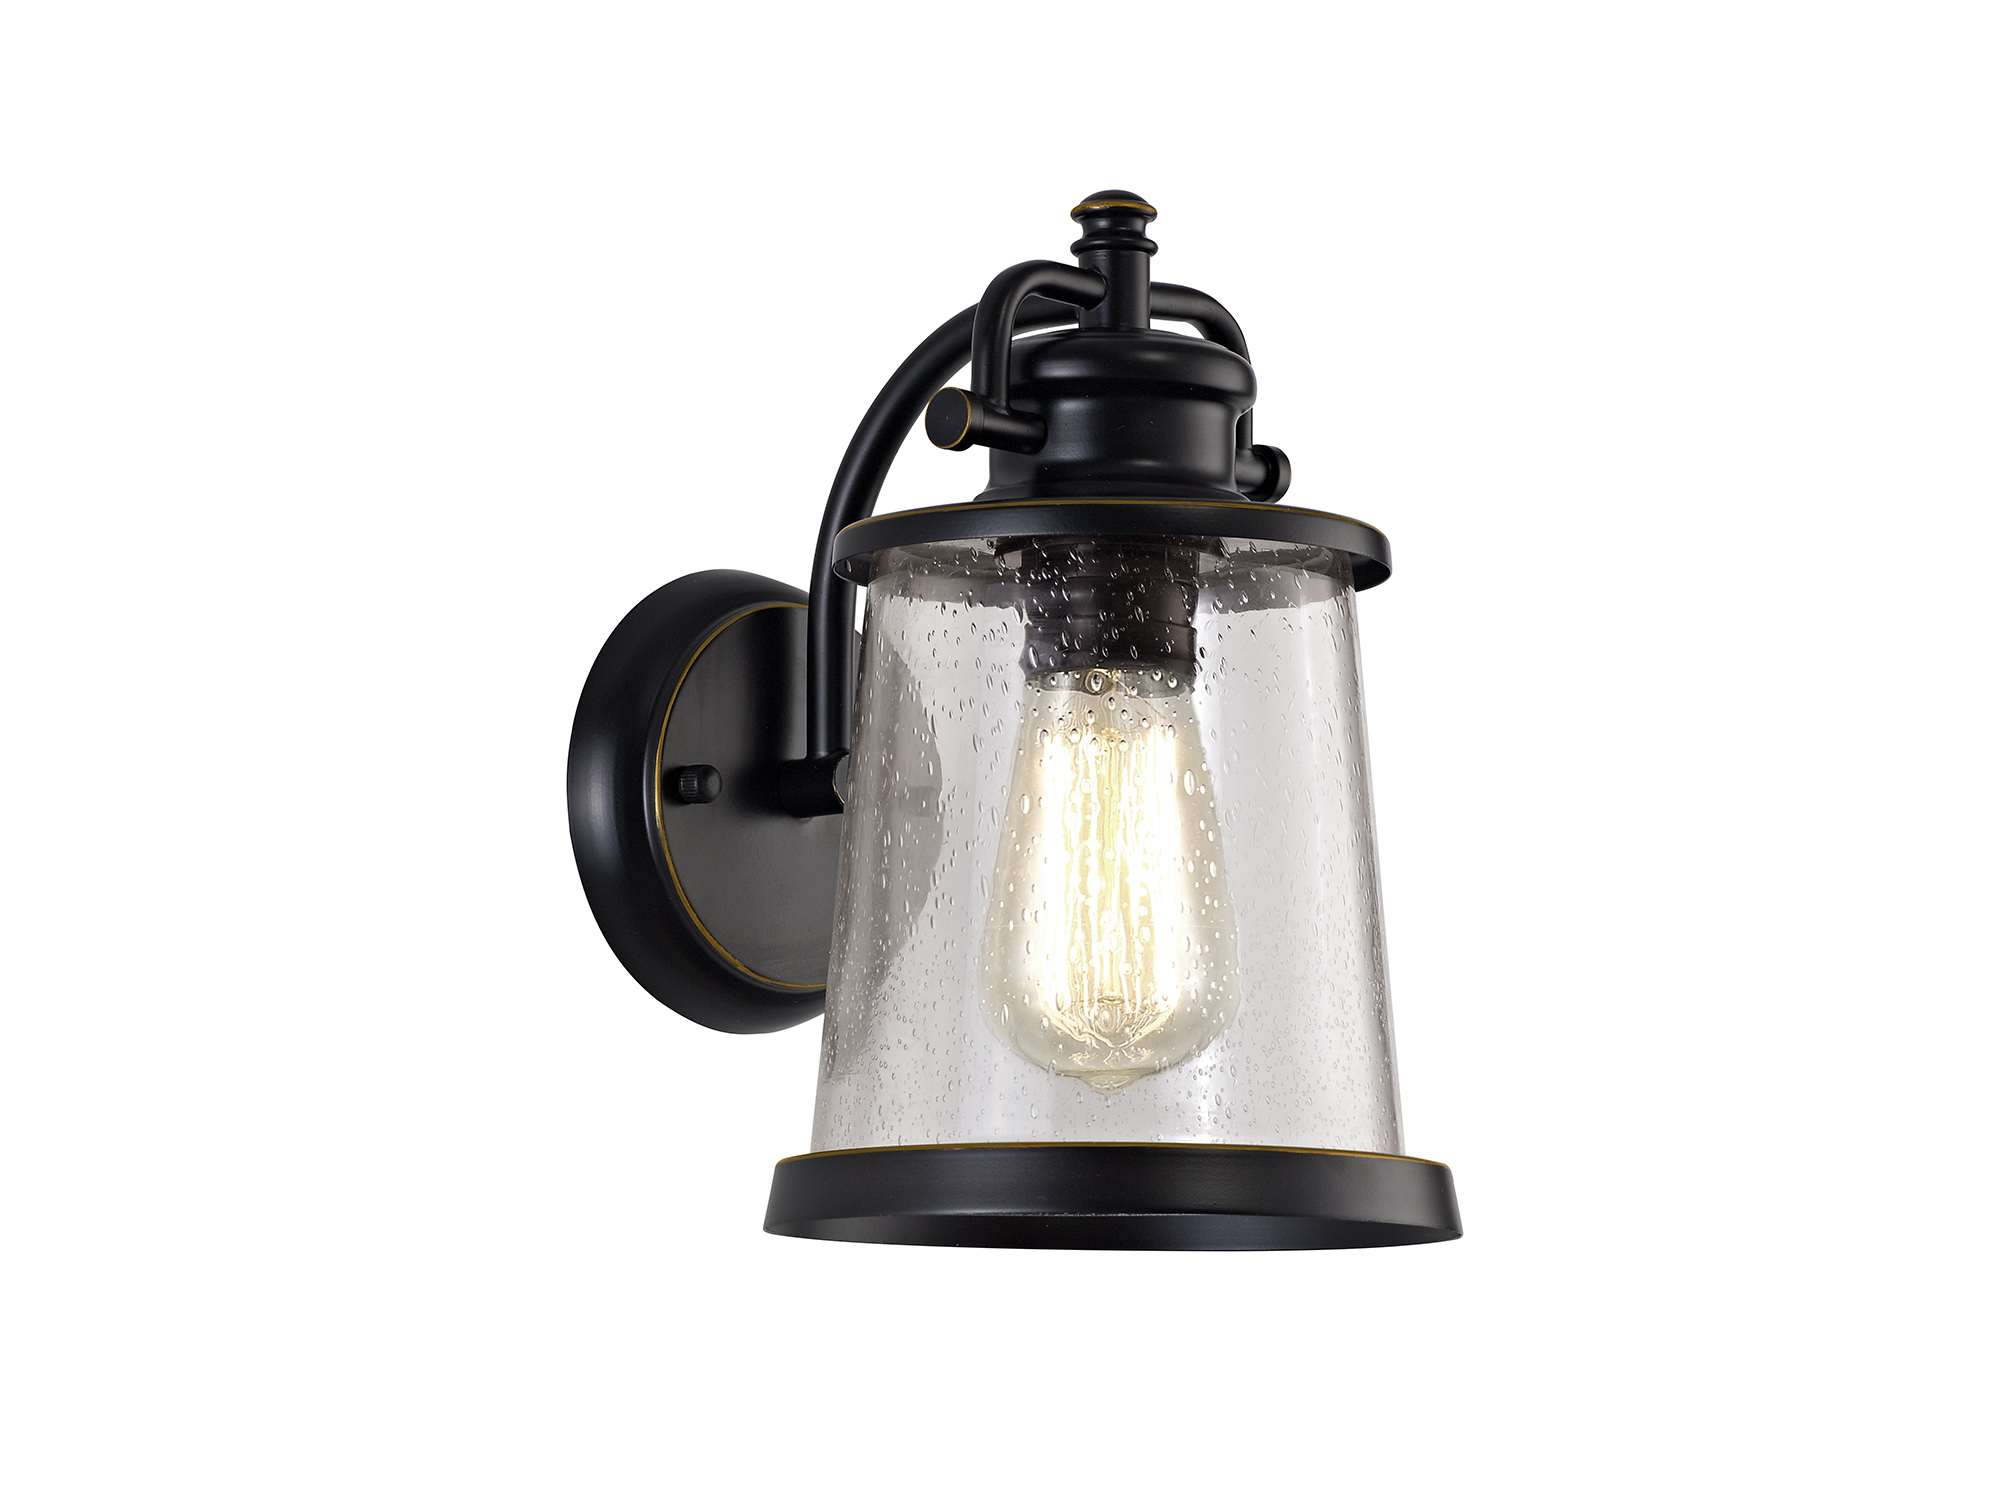 Wall Lamp, 1 x E27, Black/Gold With Seeded Clear Glass, IP54, 2yrs Warranty